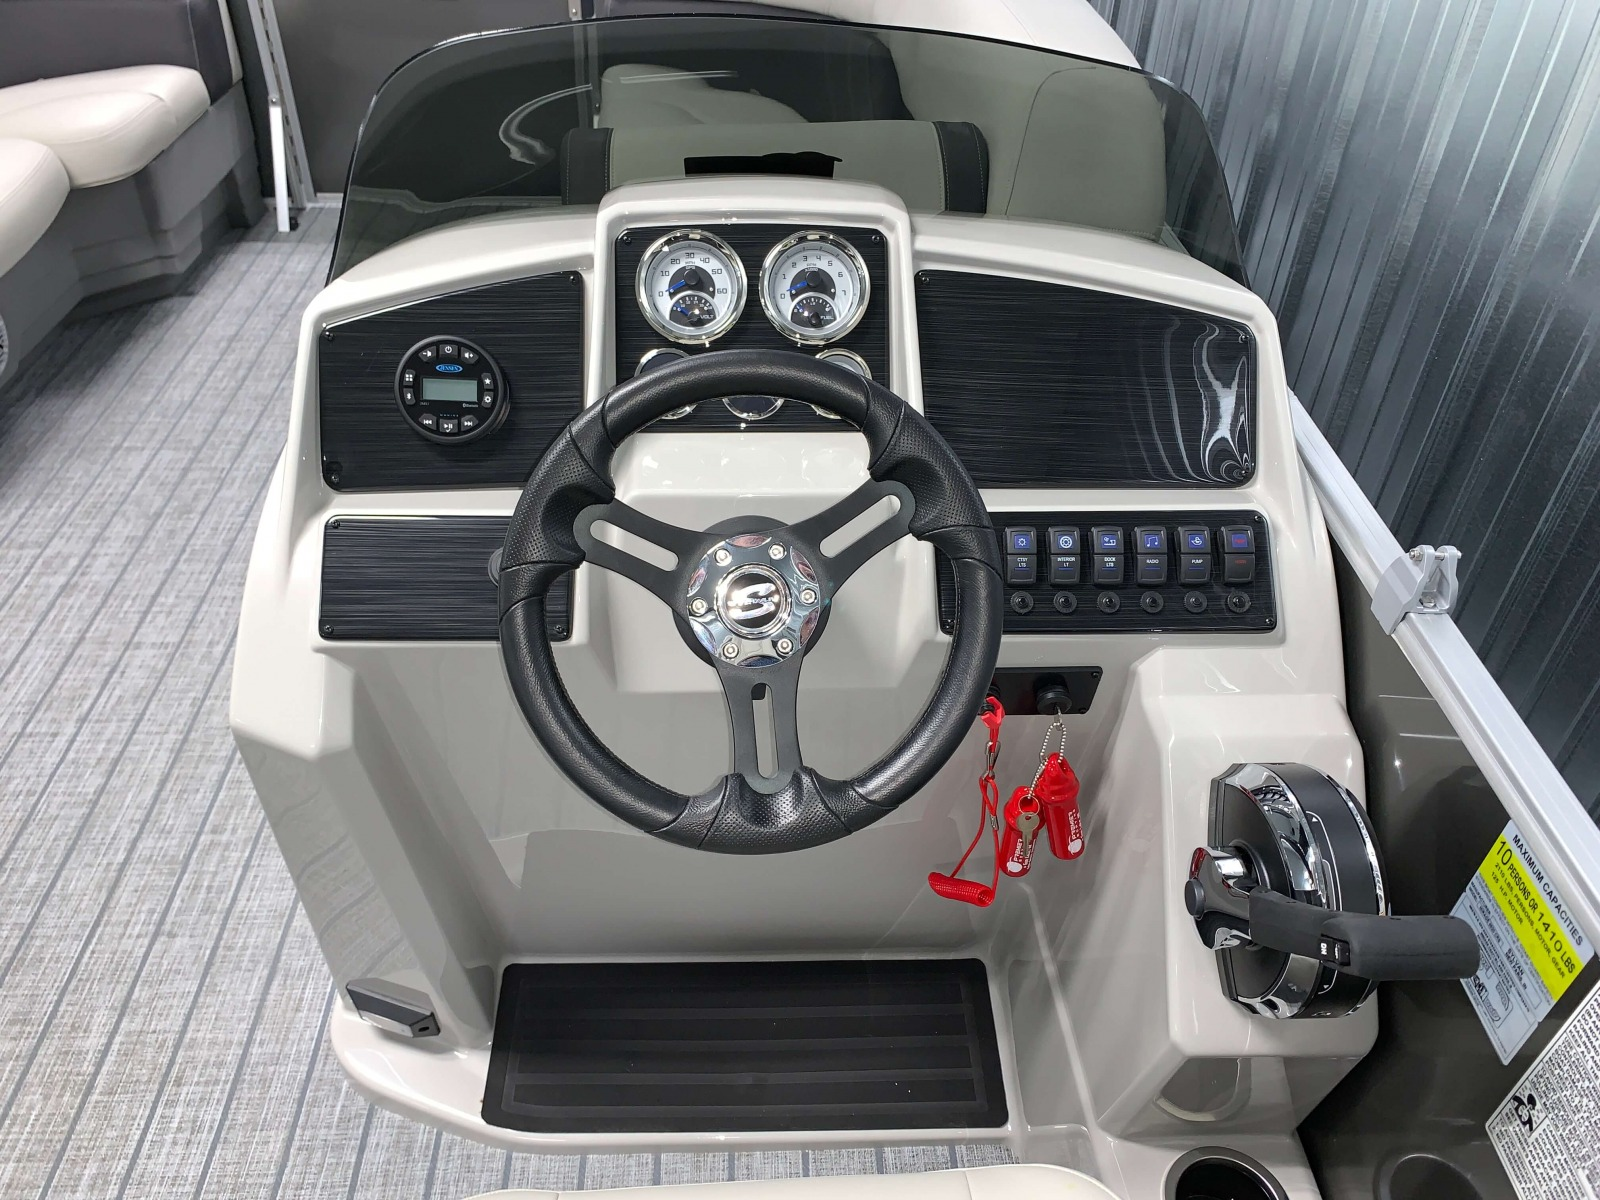 Fiberglass Console of a 2021 Sylvan Mirage 8520 Cruise Pontoon Boat